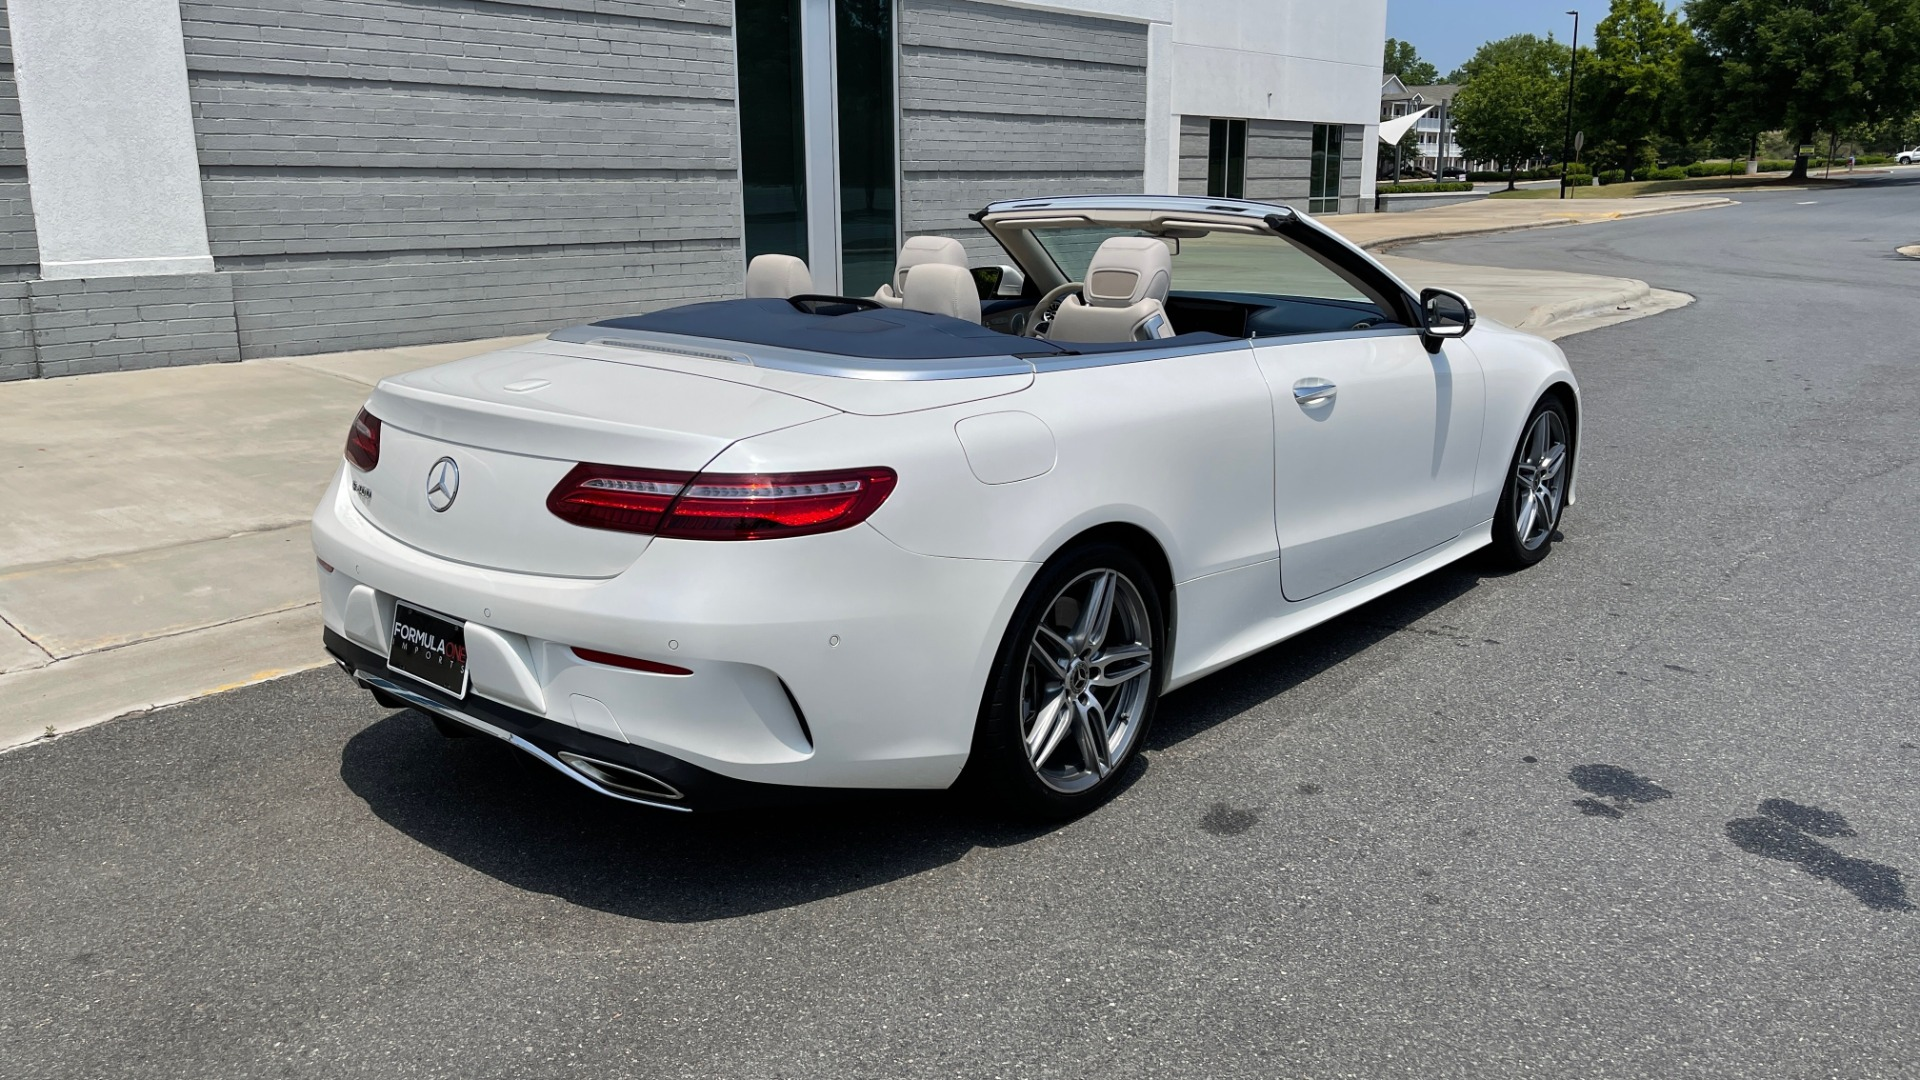 Used 2018 Mercedes-Benz E-CLASS E 400 CABRIOLET / PREM PKG / AMG LINE / NAV / REARVIEW for sale Sold at Formula Imports in Charlotte NC 28227 5